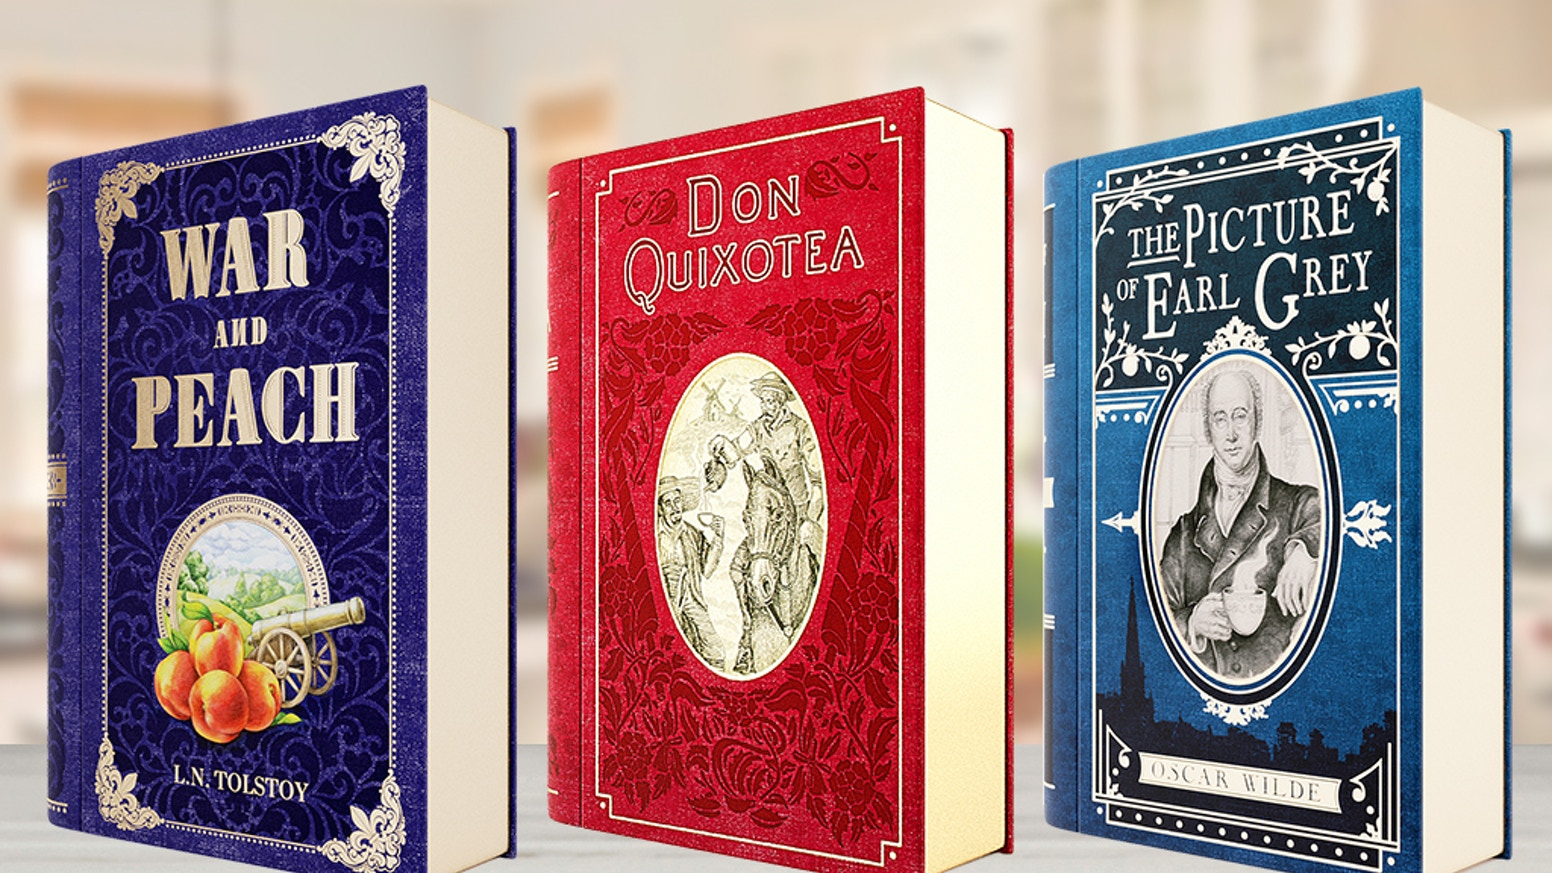 Beautiful tea tins with a novel twist: Don QuixoTea, War and Peach, and Oscar Wilde's The Picture of Earl Grey